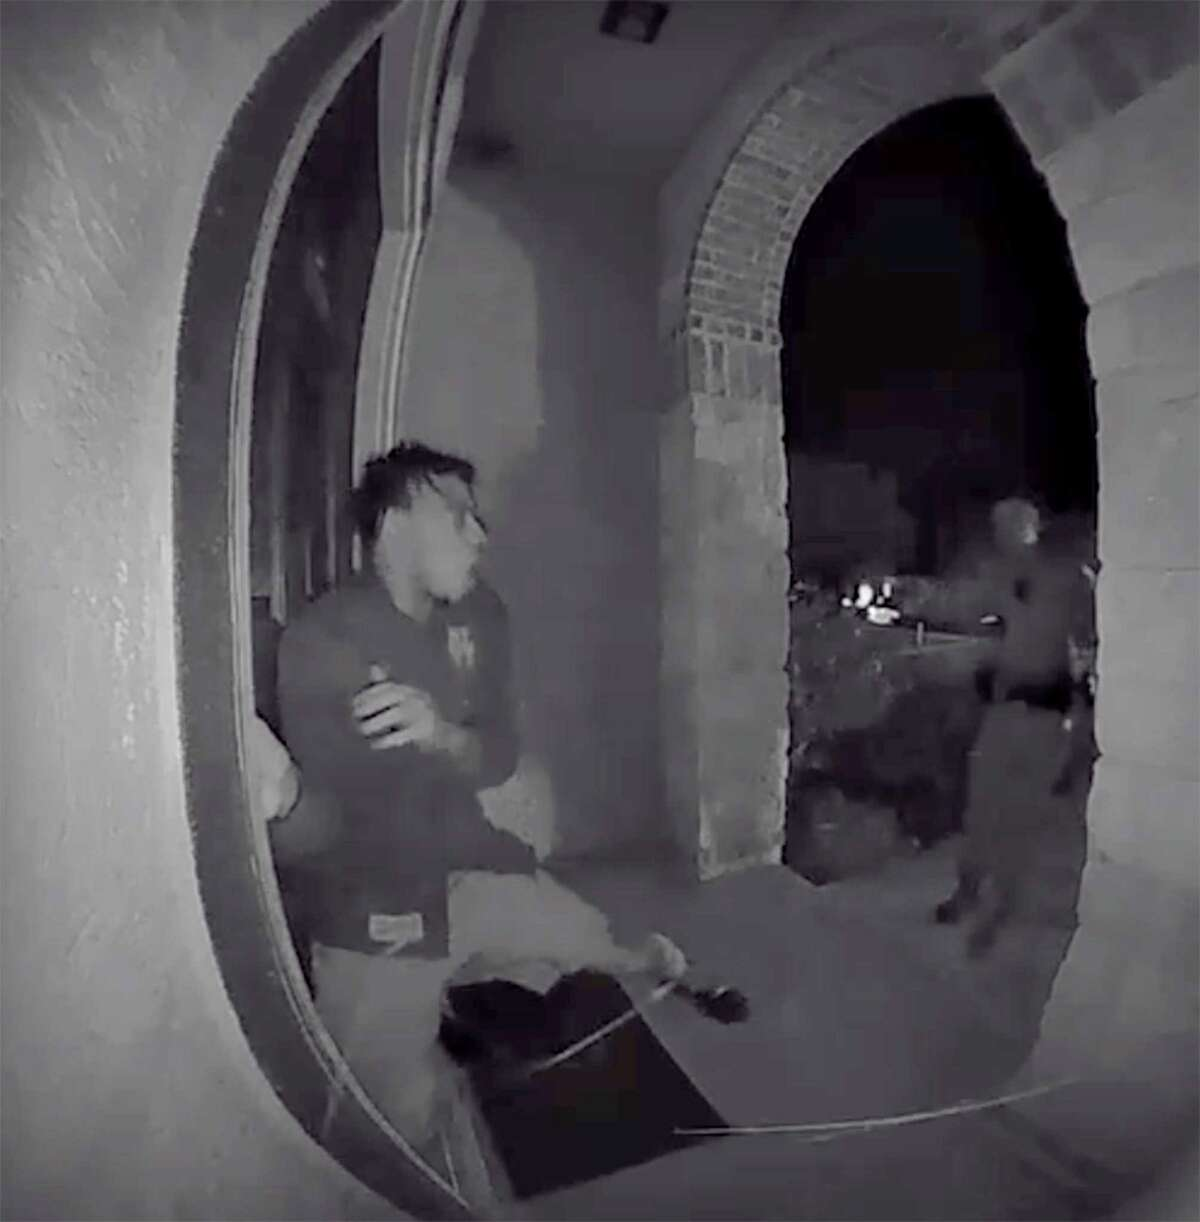 A screen grab from a home surveillance video shows a Schertz police officer pointing a weapon at Zekee Rayford, 18, before arresting him on the front steps of his home while the parents watch from inside the front door.